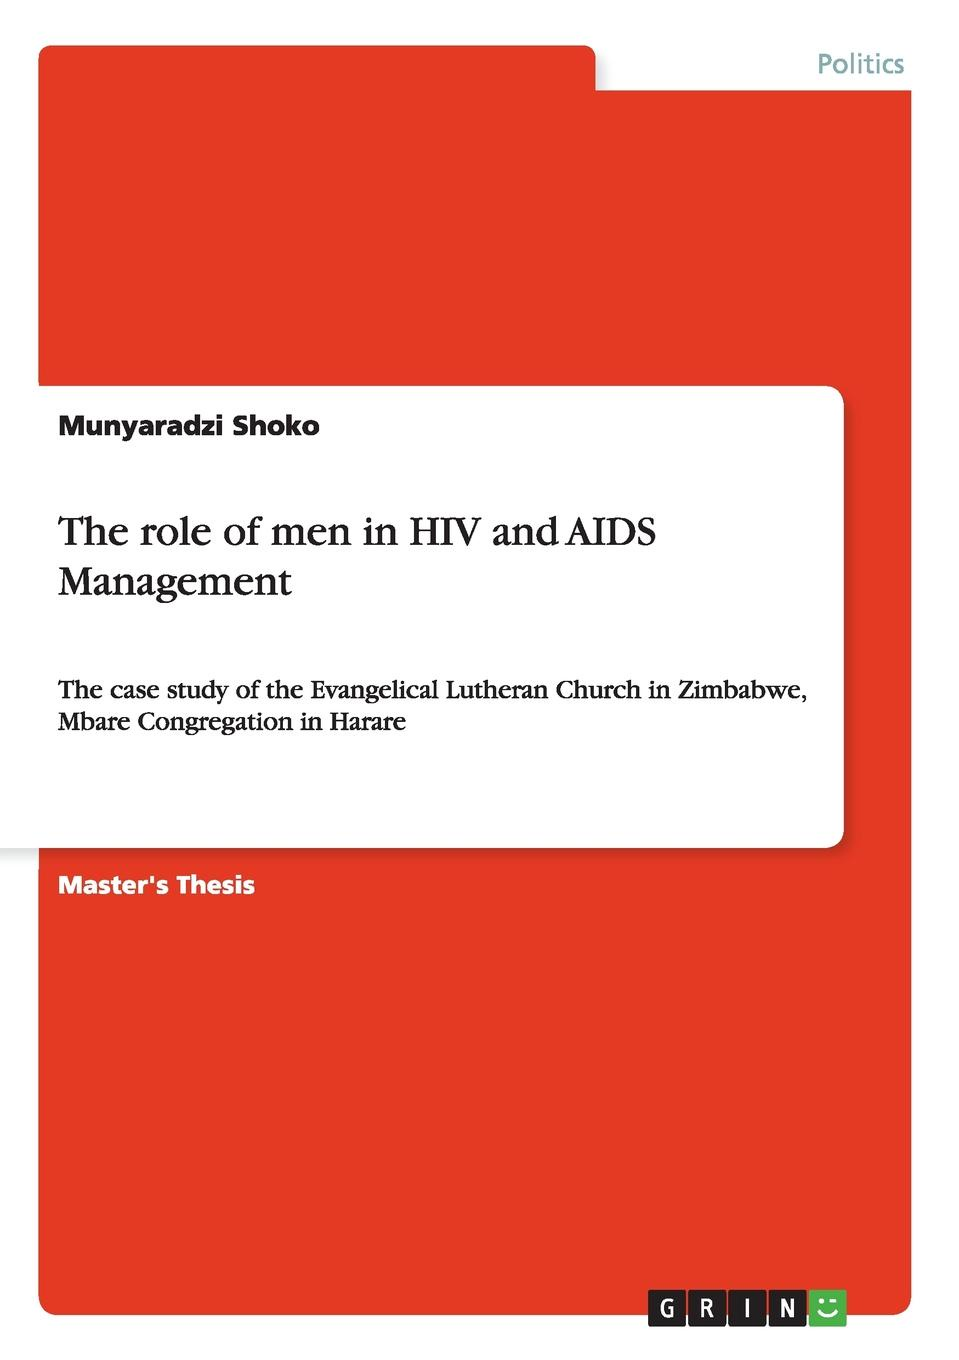 Munyaradzi Shoko The role of men in HIV and AIDS Management advanced diagnostic microbiological aids in periodontics